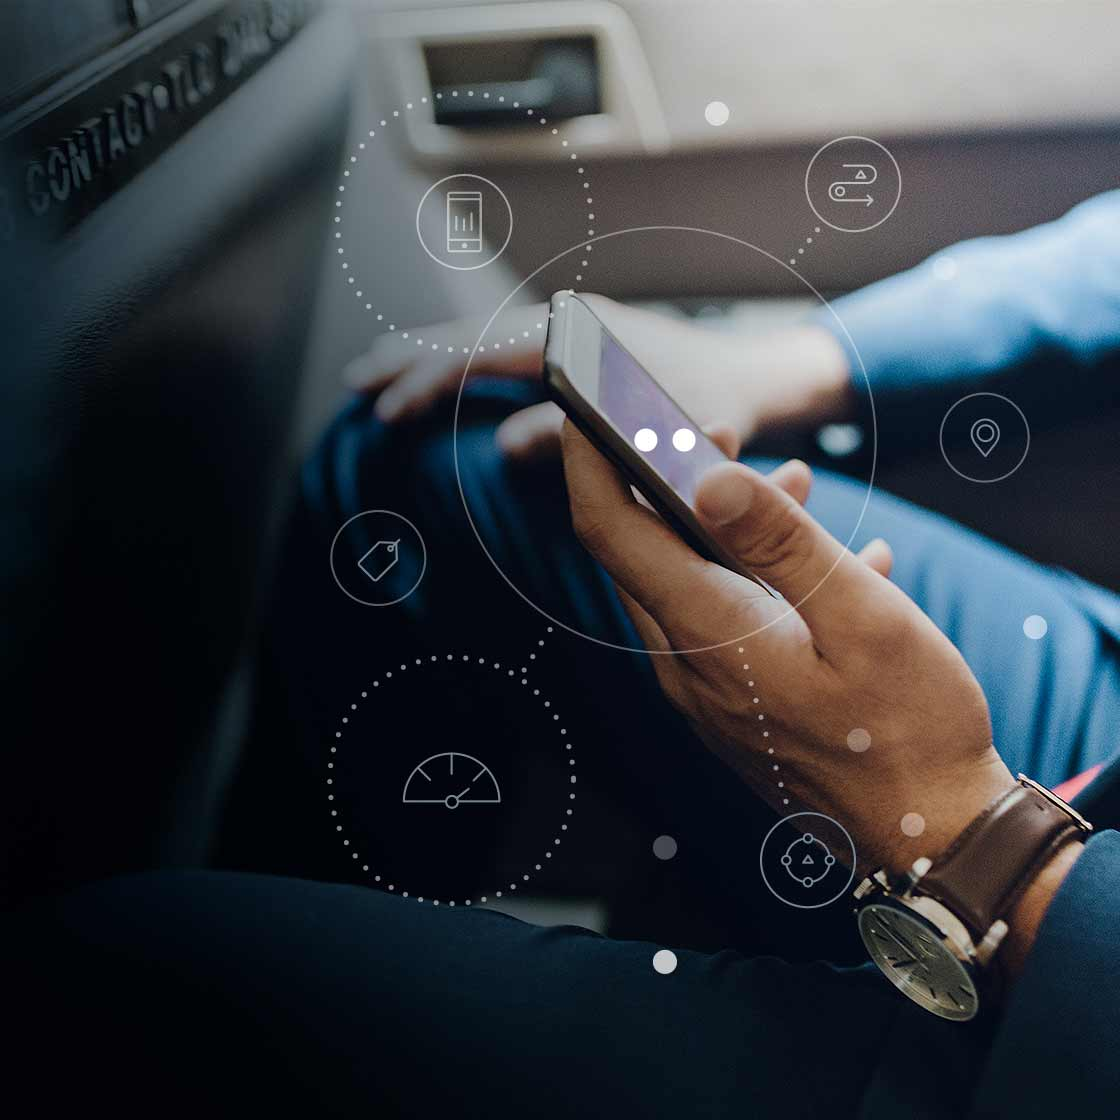 SafeCAN protects automotive networks from hacking by authenticating in-vehicle communications with zero network overhead